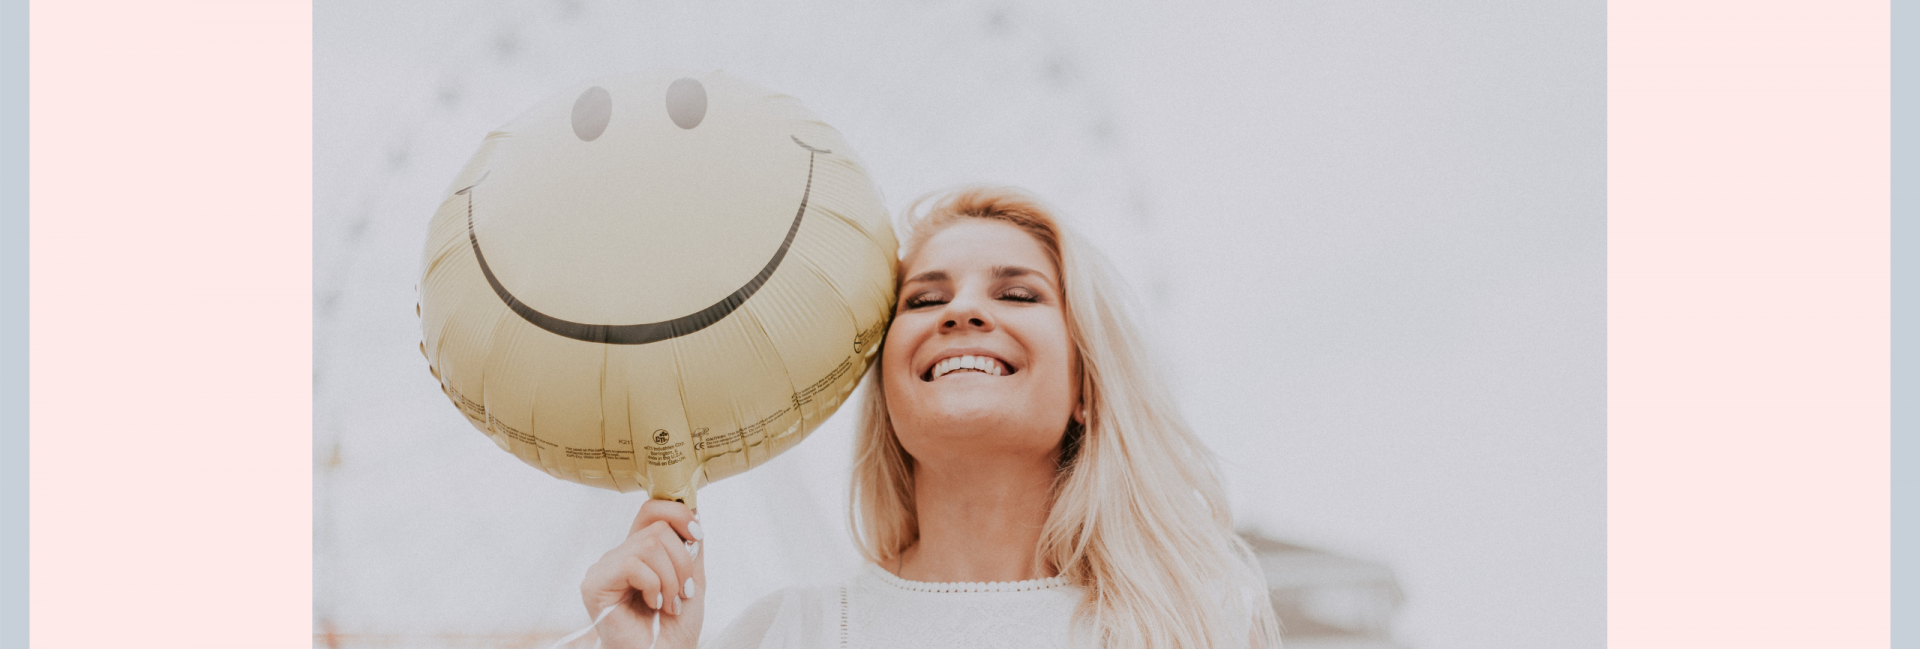 Happy woman holding a yellow smiley balloon